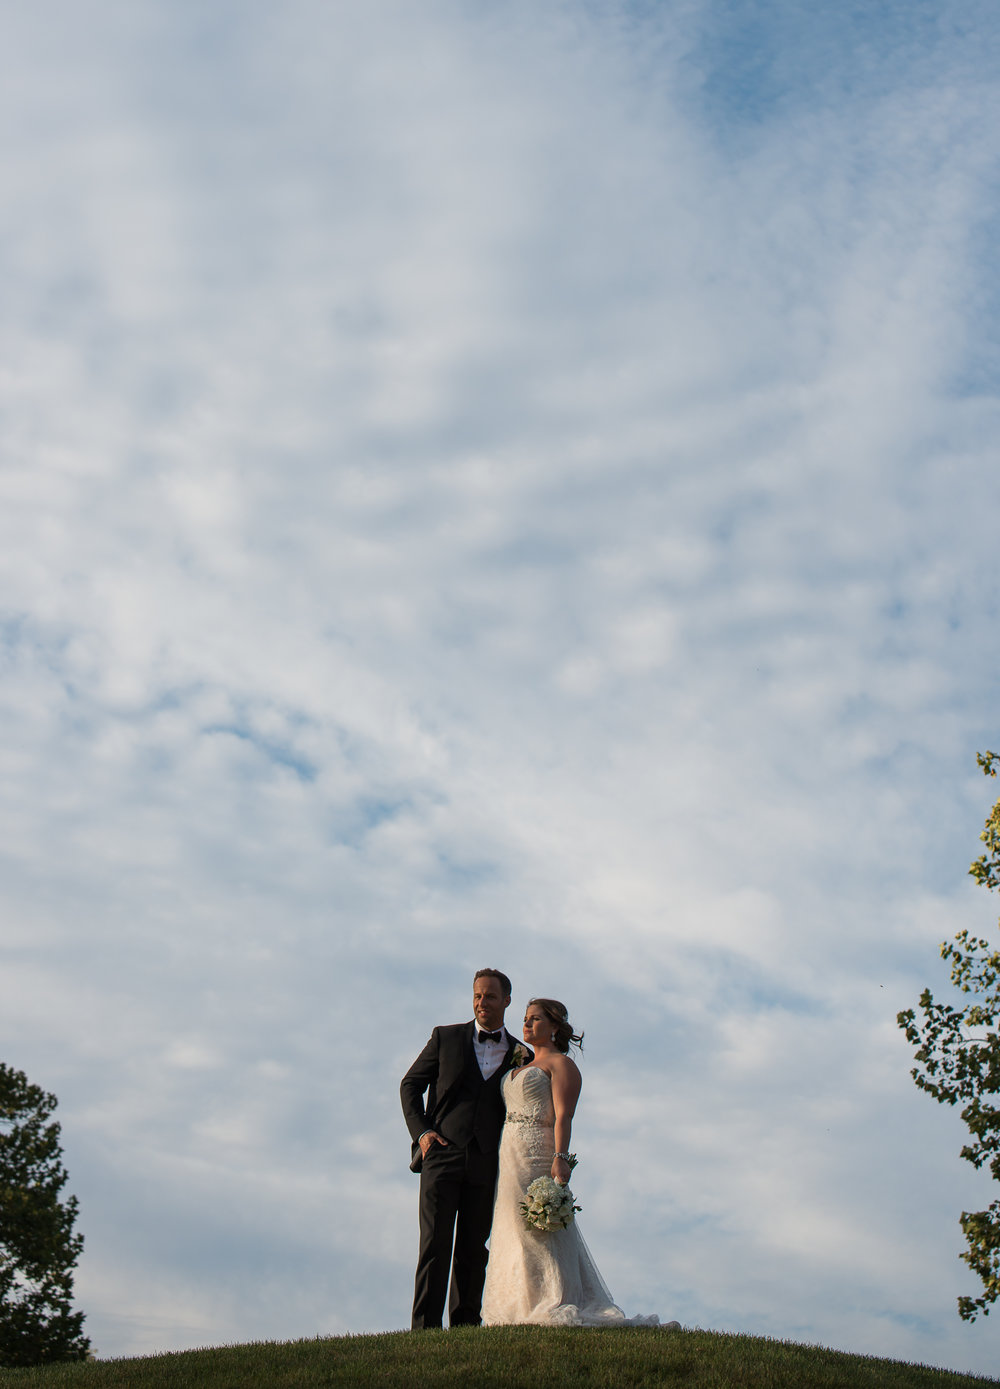 ASHLEY + KYLE - CLICK FOR MORE AMAZING WEDDING IMAGES